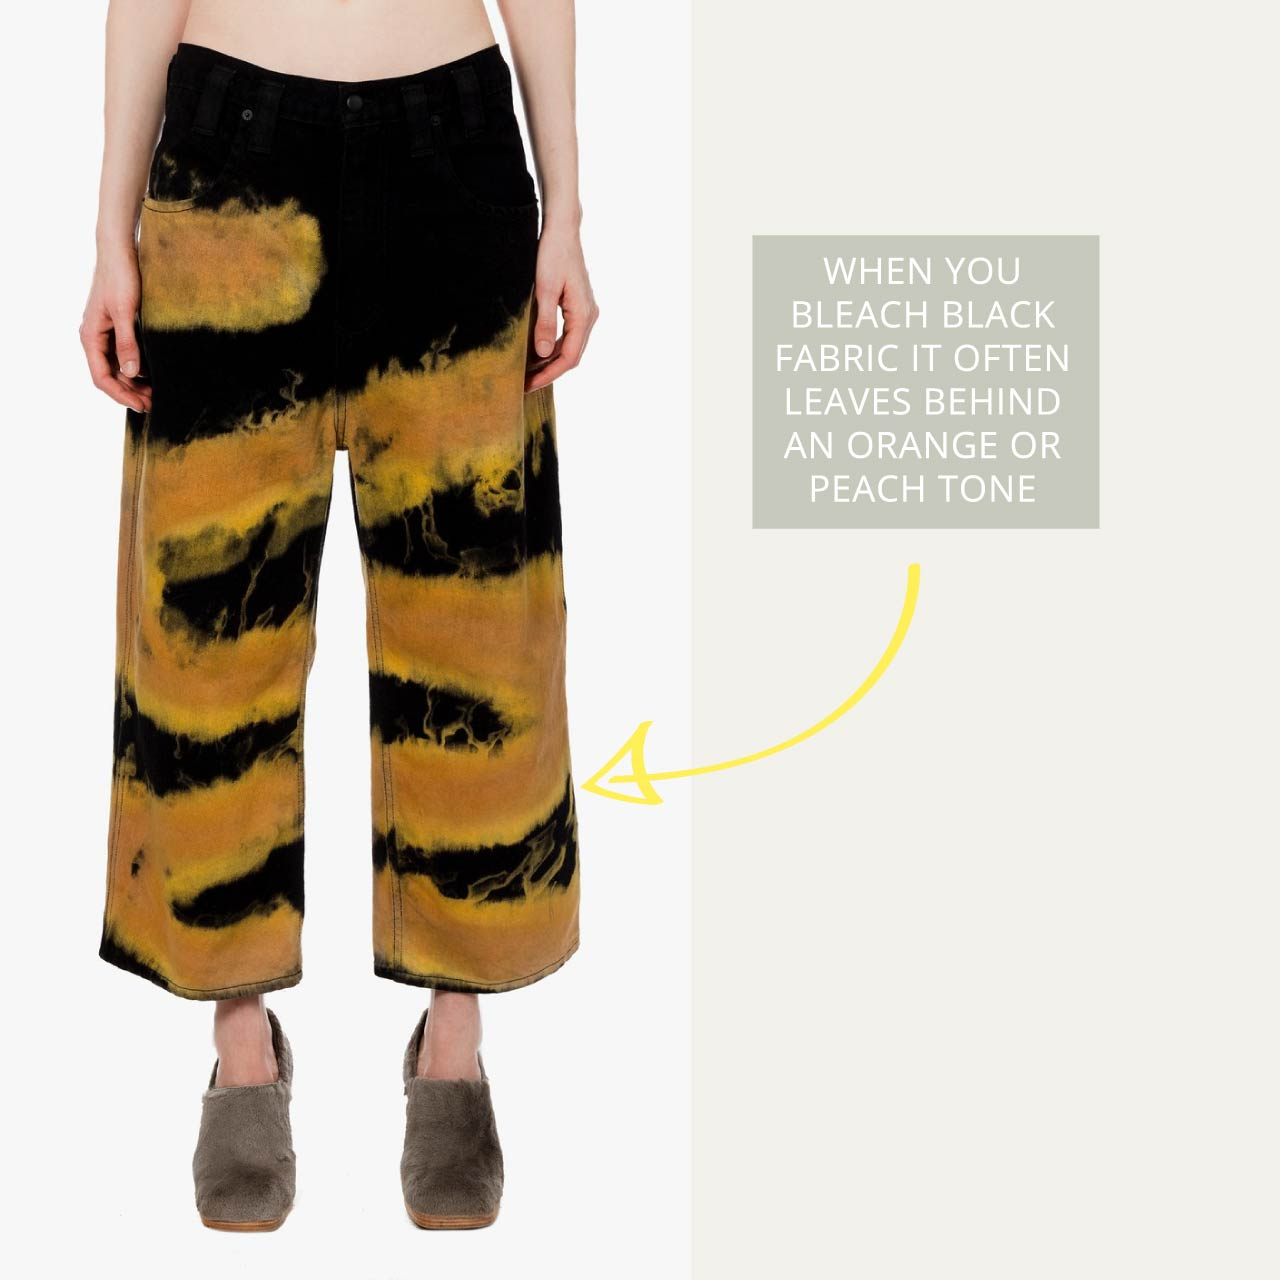 'Baggy Jean Chemtrail' Eckhaus Latta style shows how bleaching denim often results in an orange or peach tone.